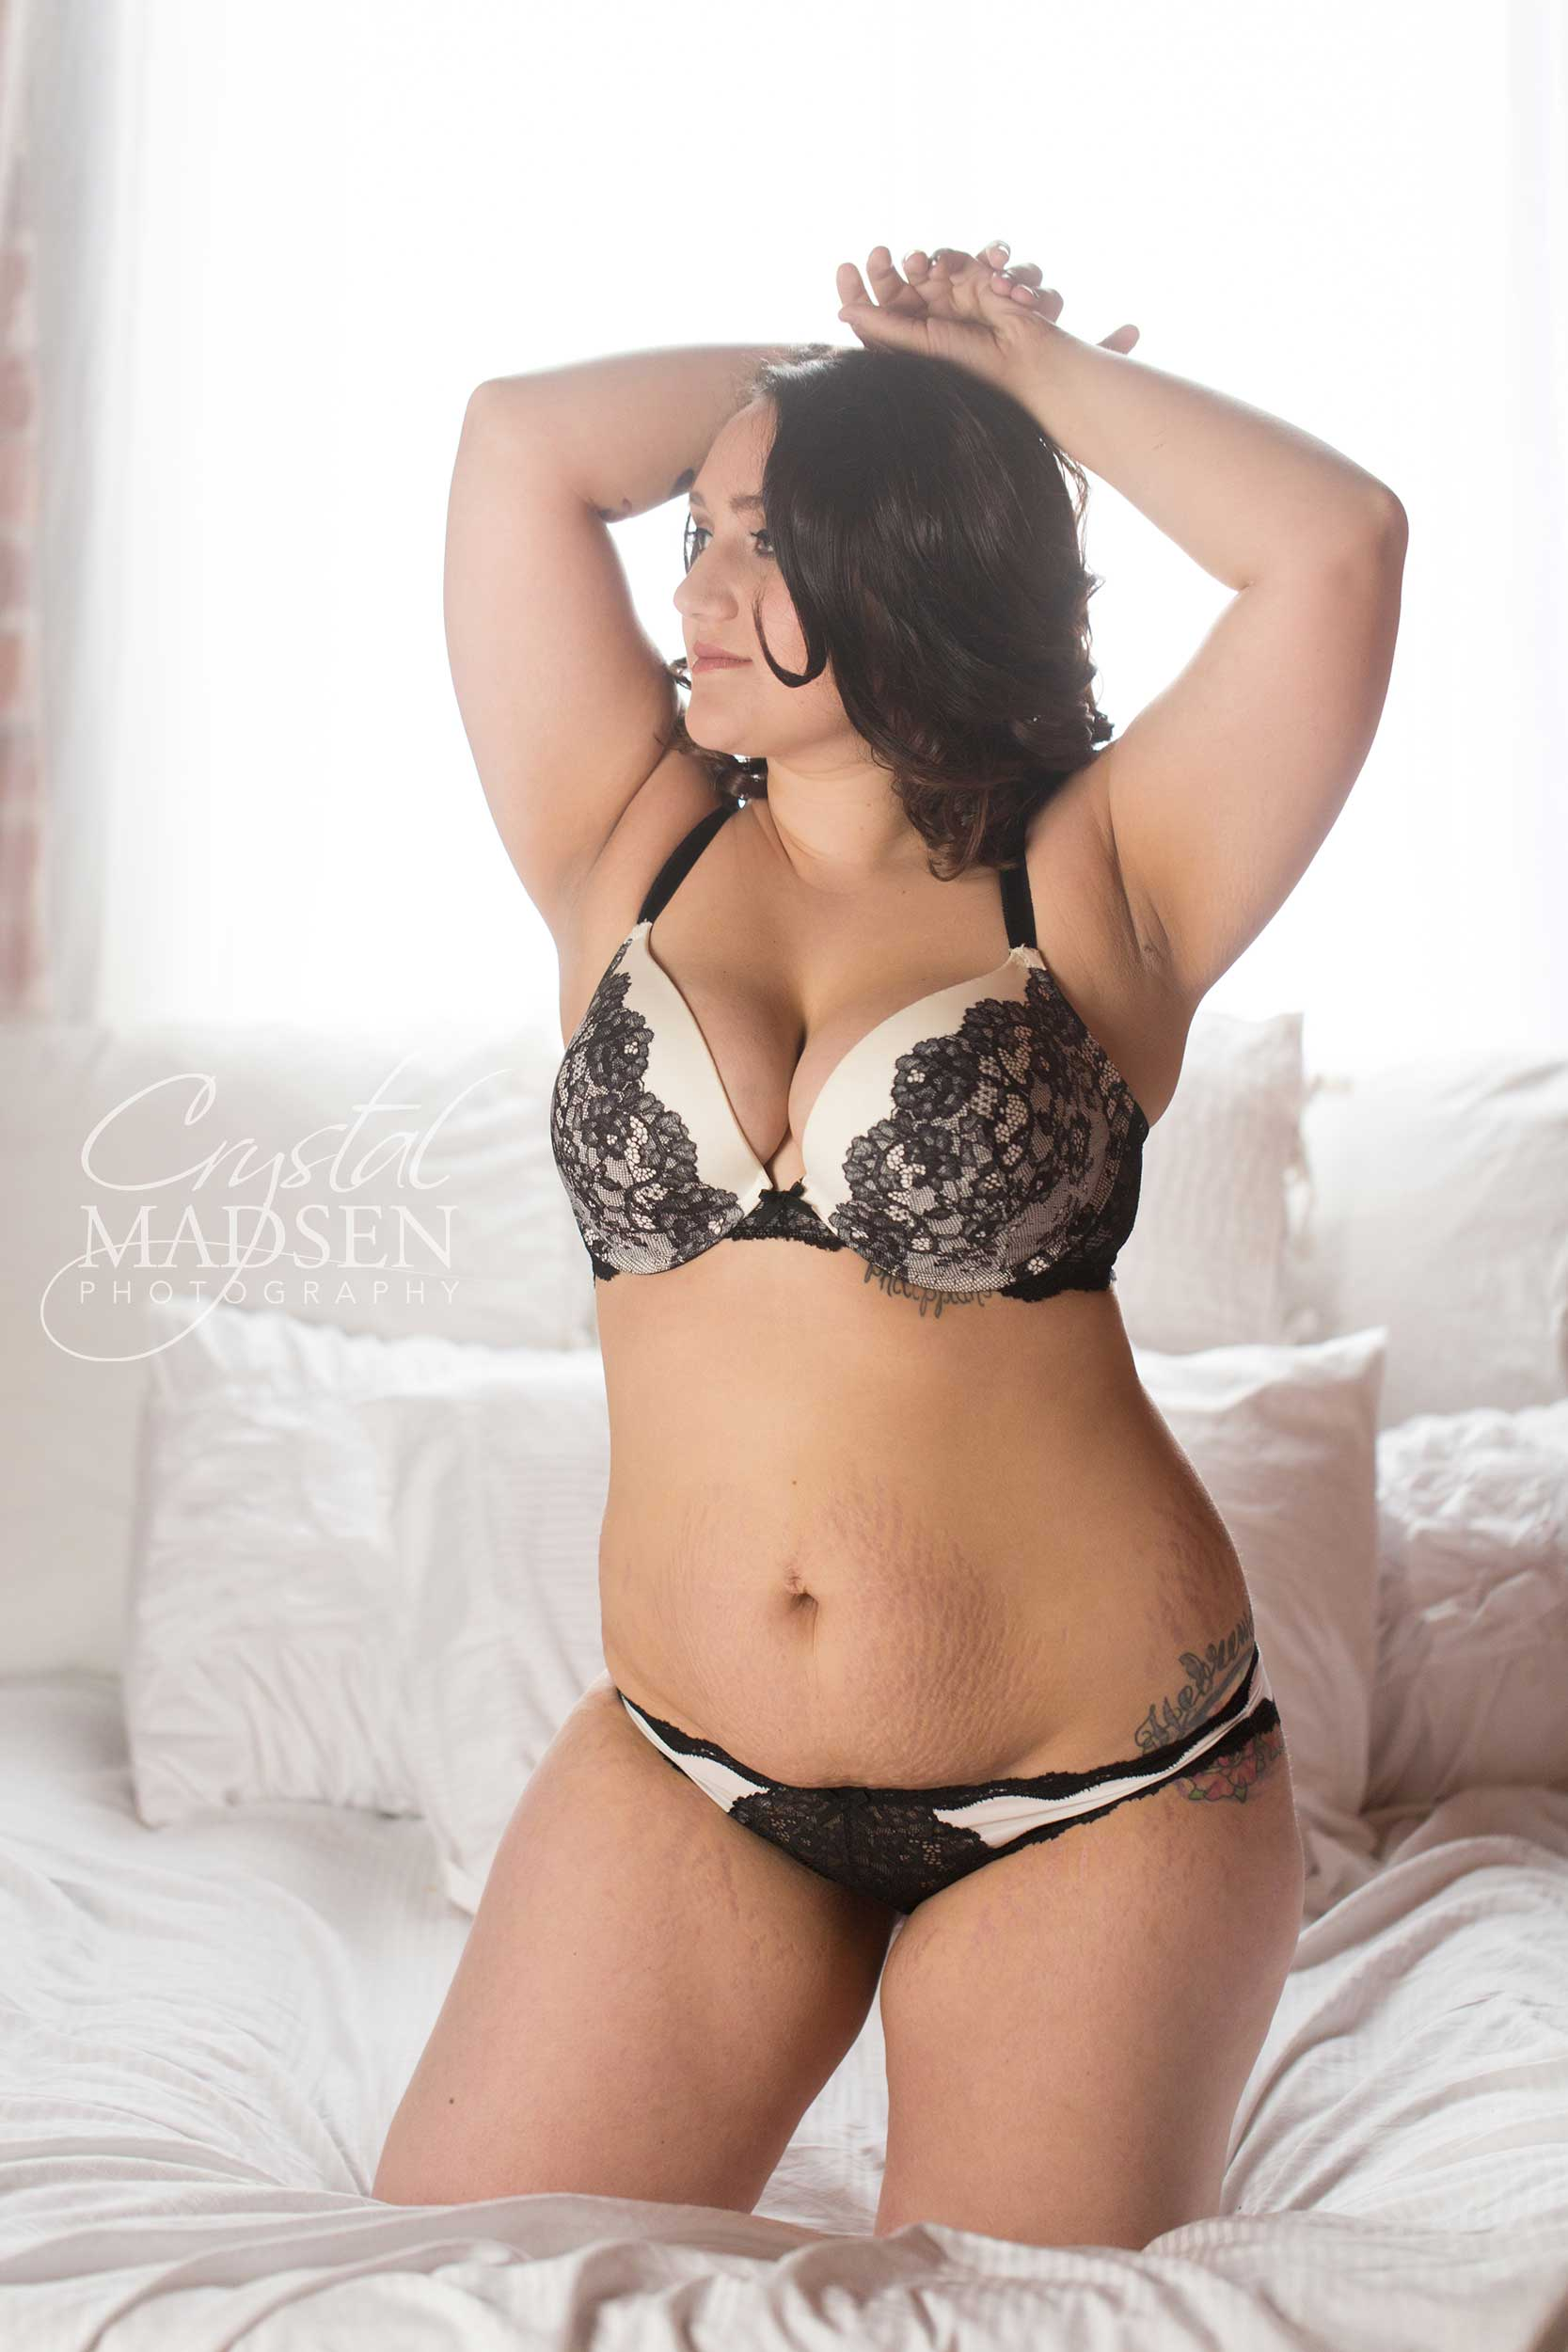 boudoir photography in spokane